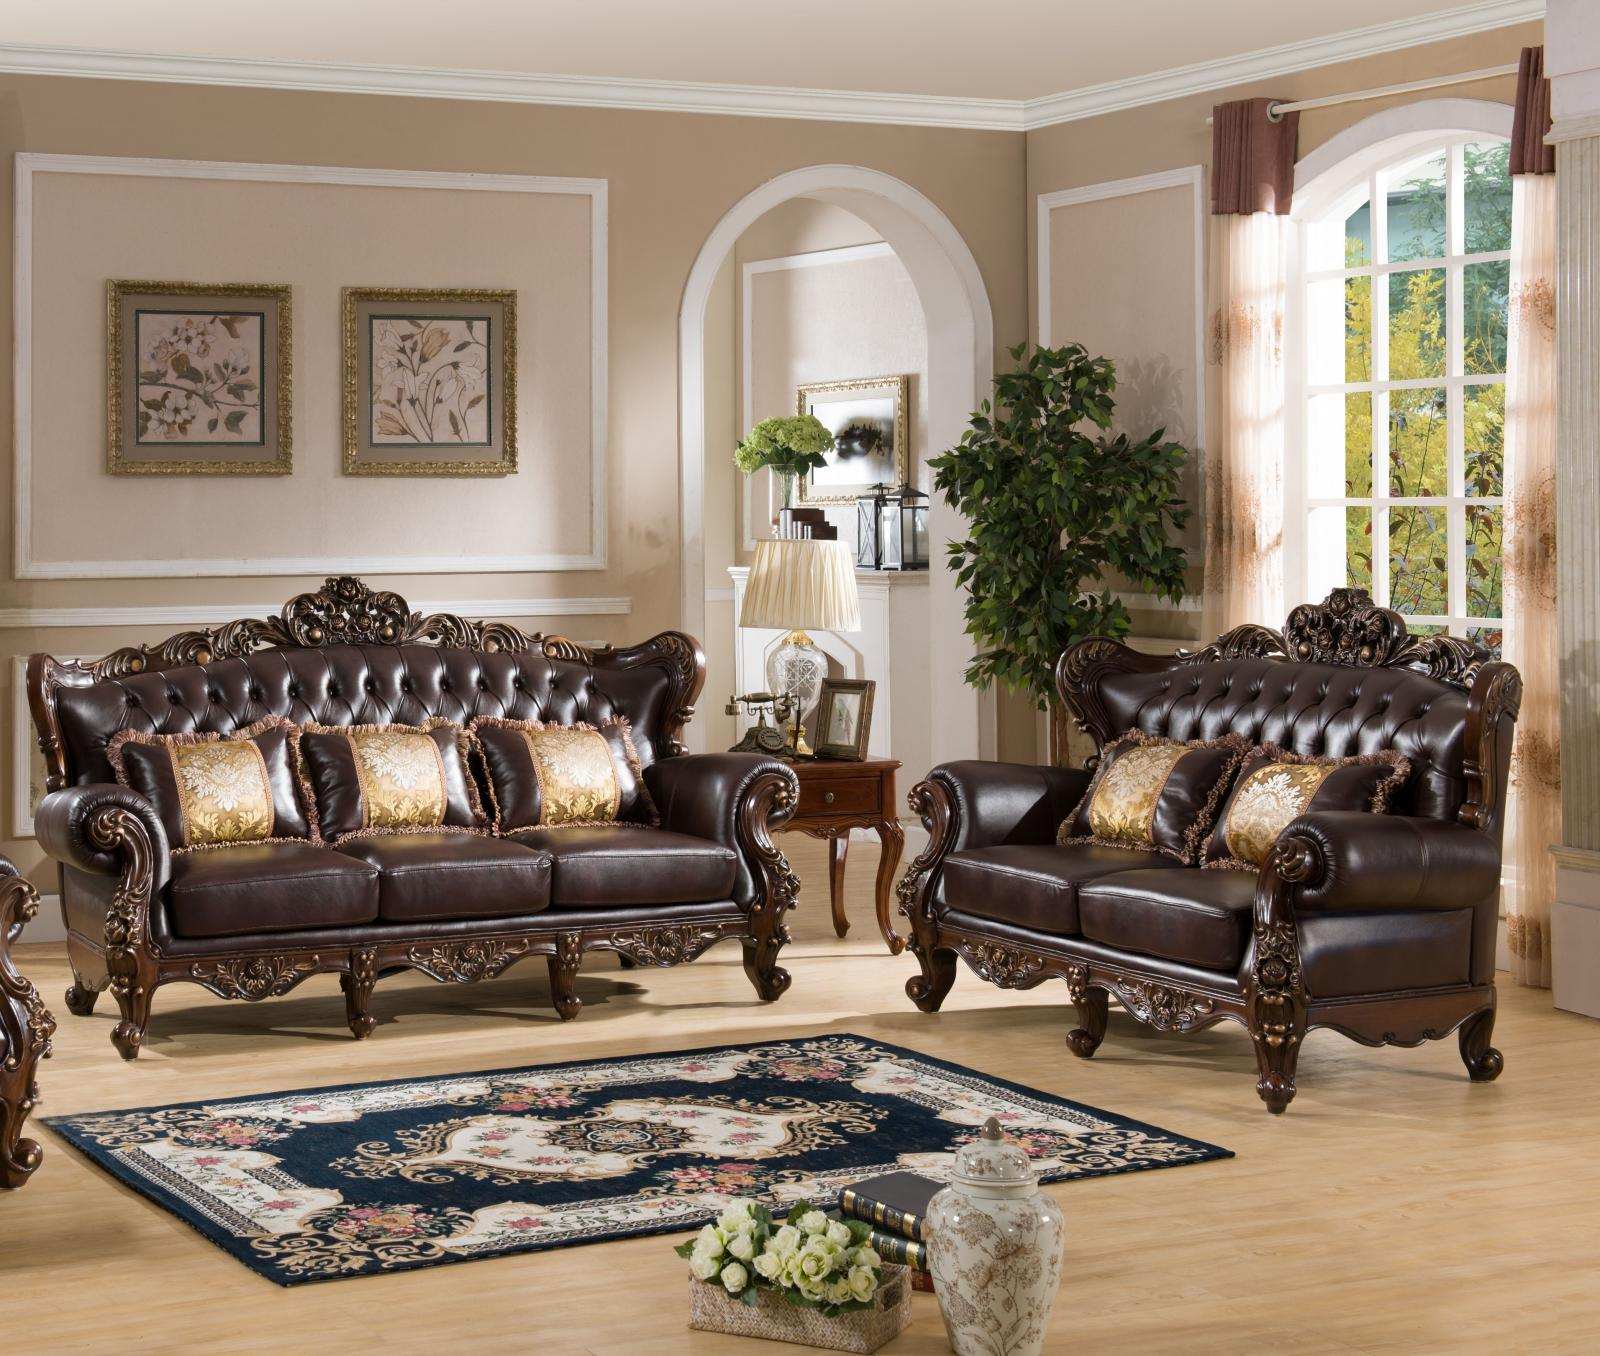 Traditional Cherry Fabric and Fabric, Wood Sofa and Loveseat Set 2 pcs Vanessa by Cosmos Furniture